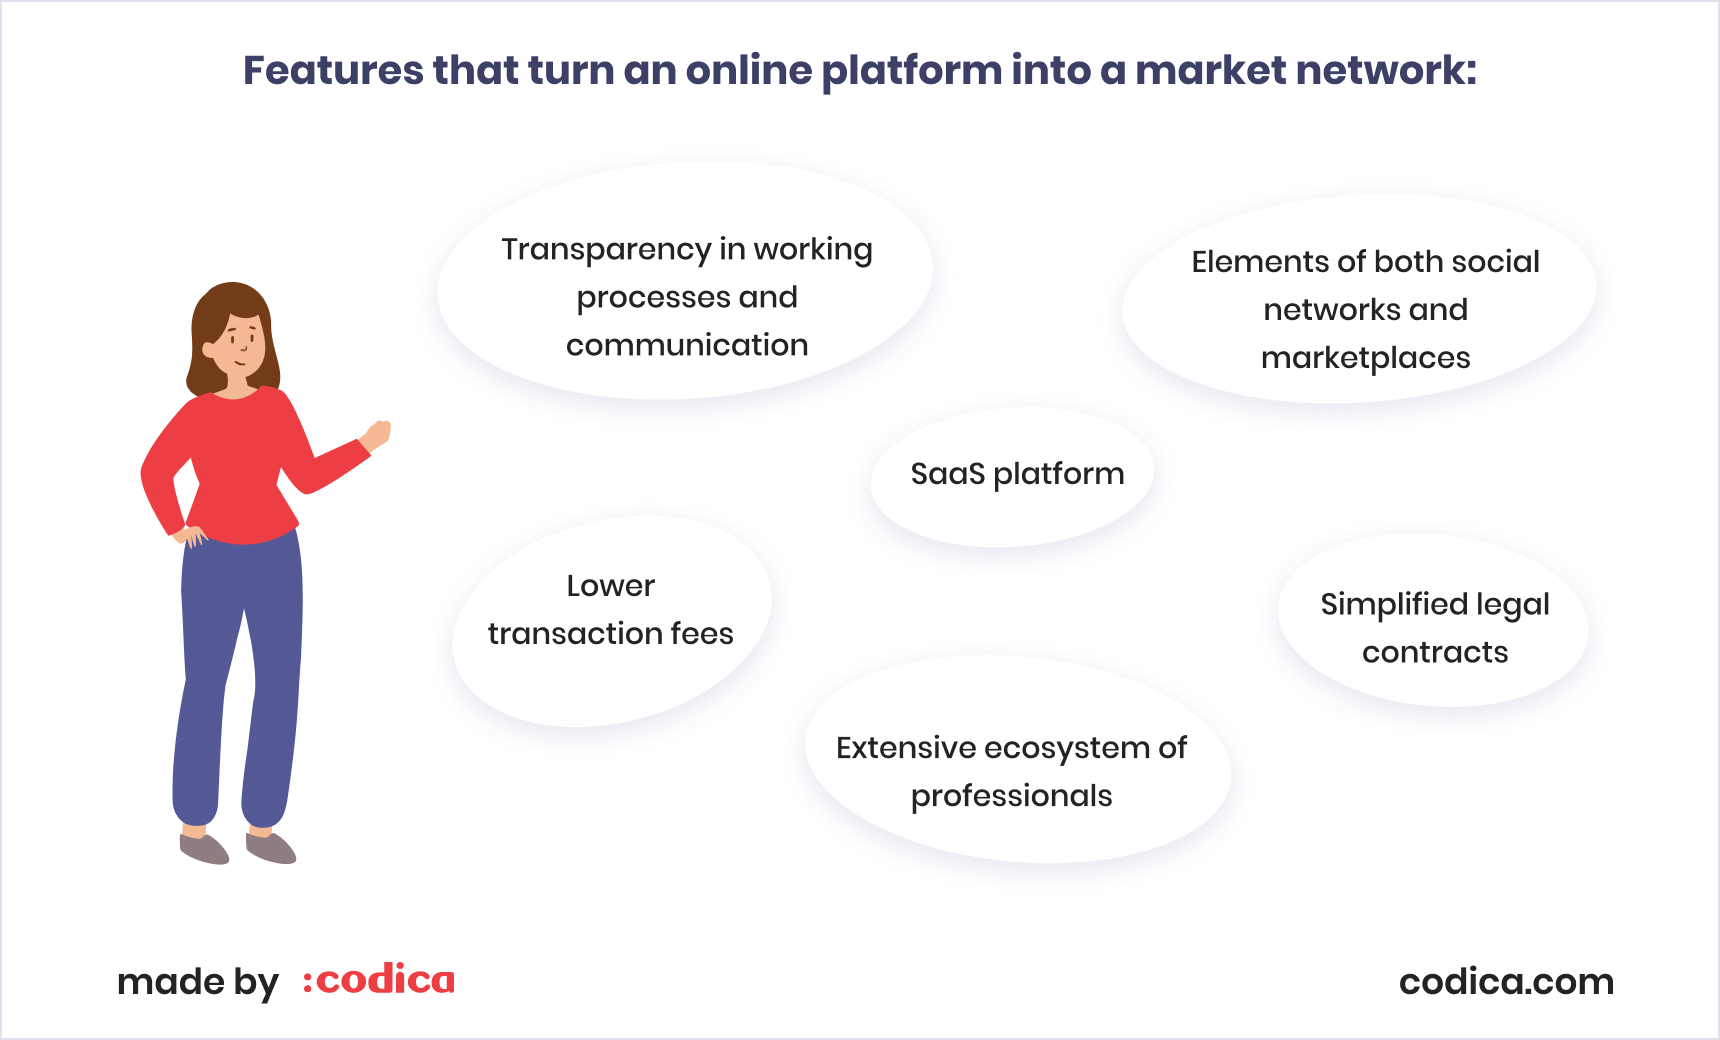 The least of features for a market network | Codica